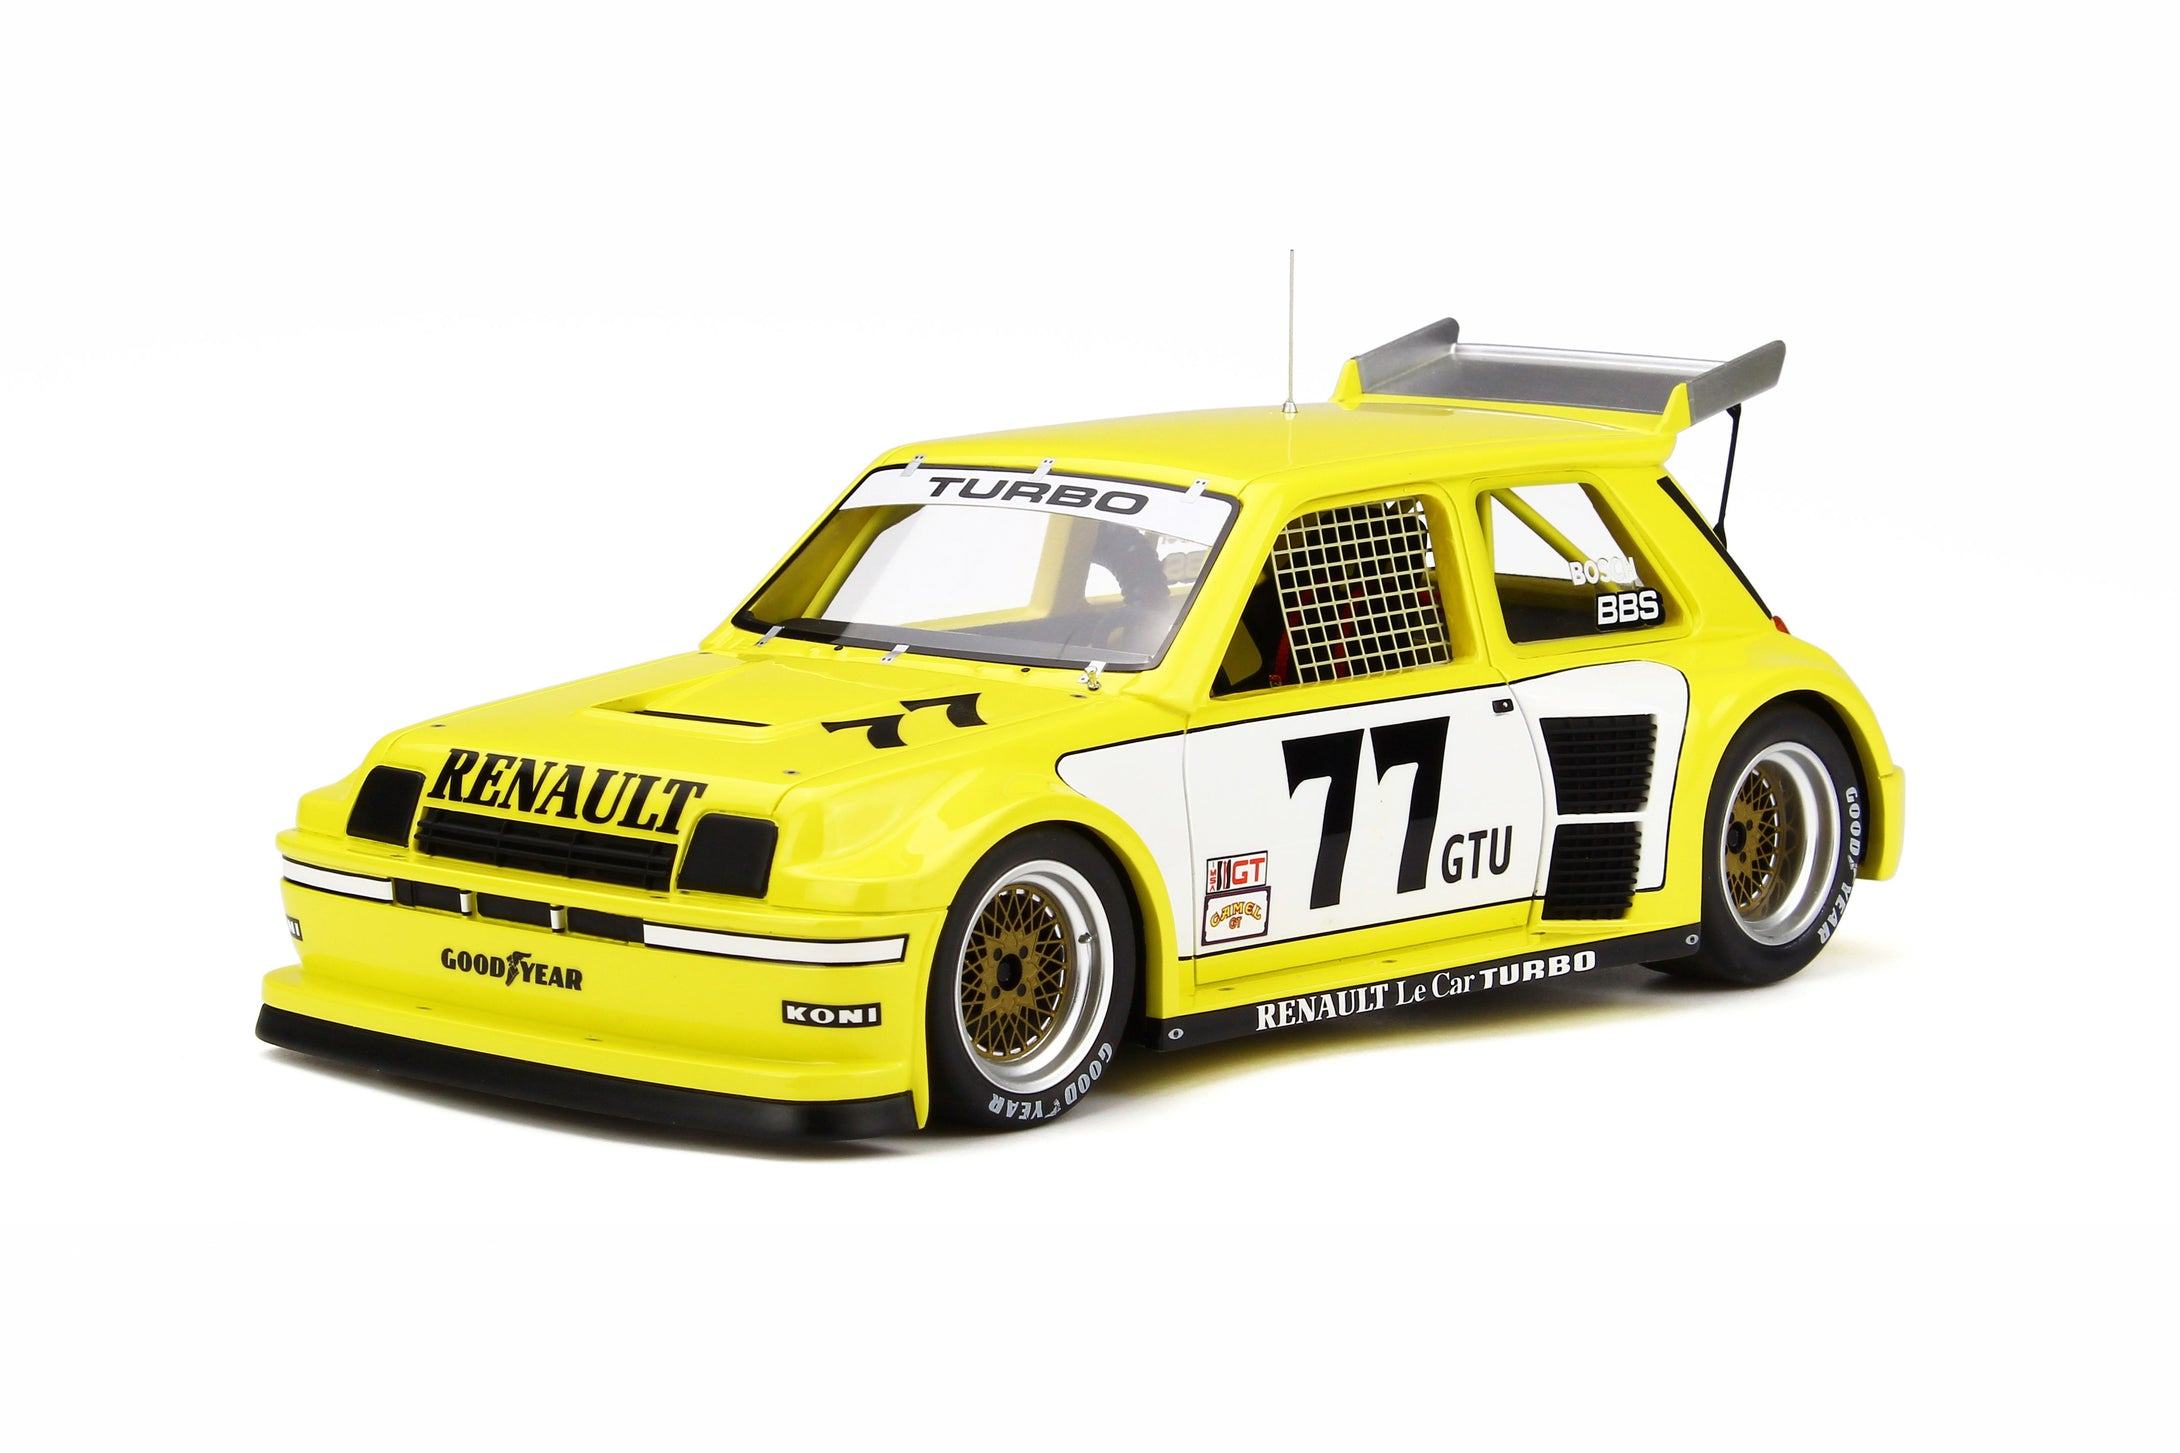 OTTO 1/18 Renault #77 Le Car Turbo IMSA OT261